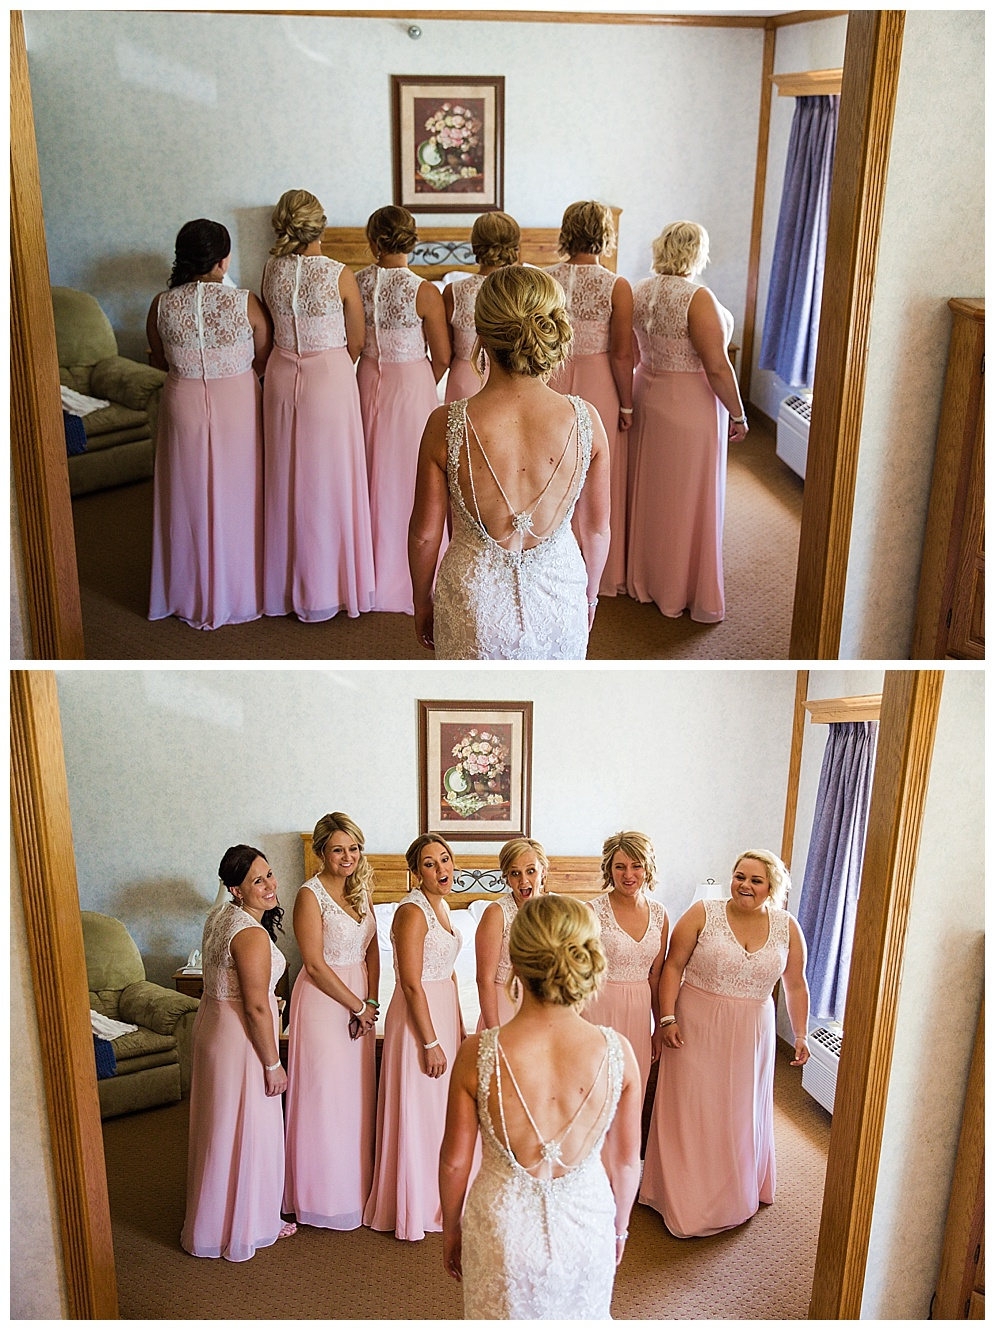 I LOVE doing first looks with the bridesmaids. Their reactions are always priceless!